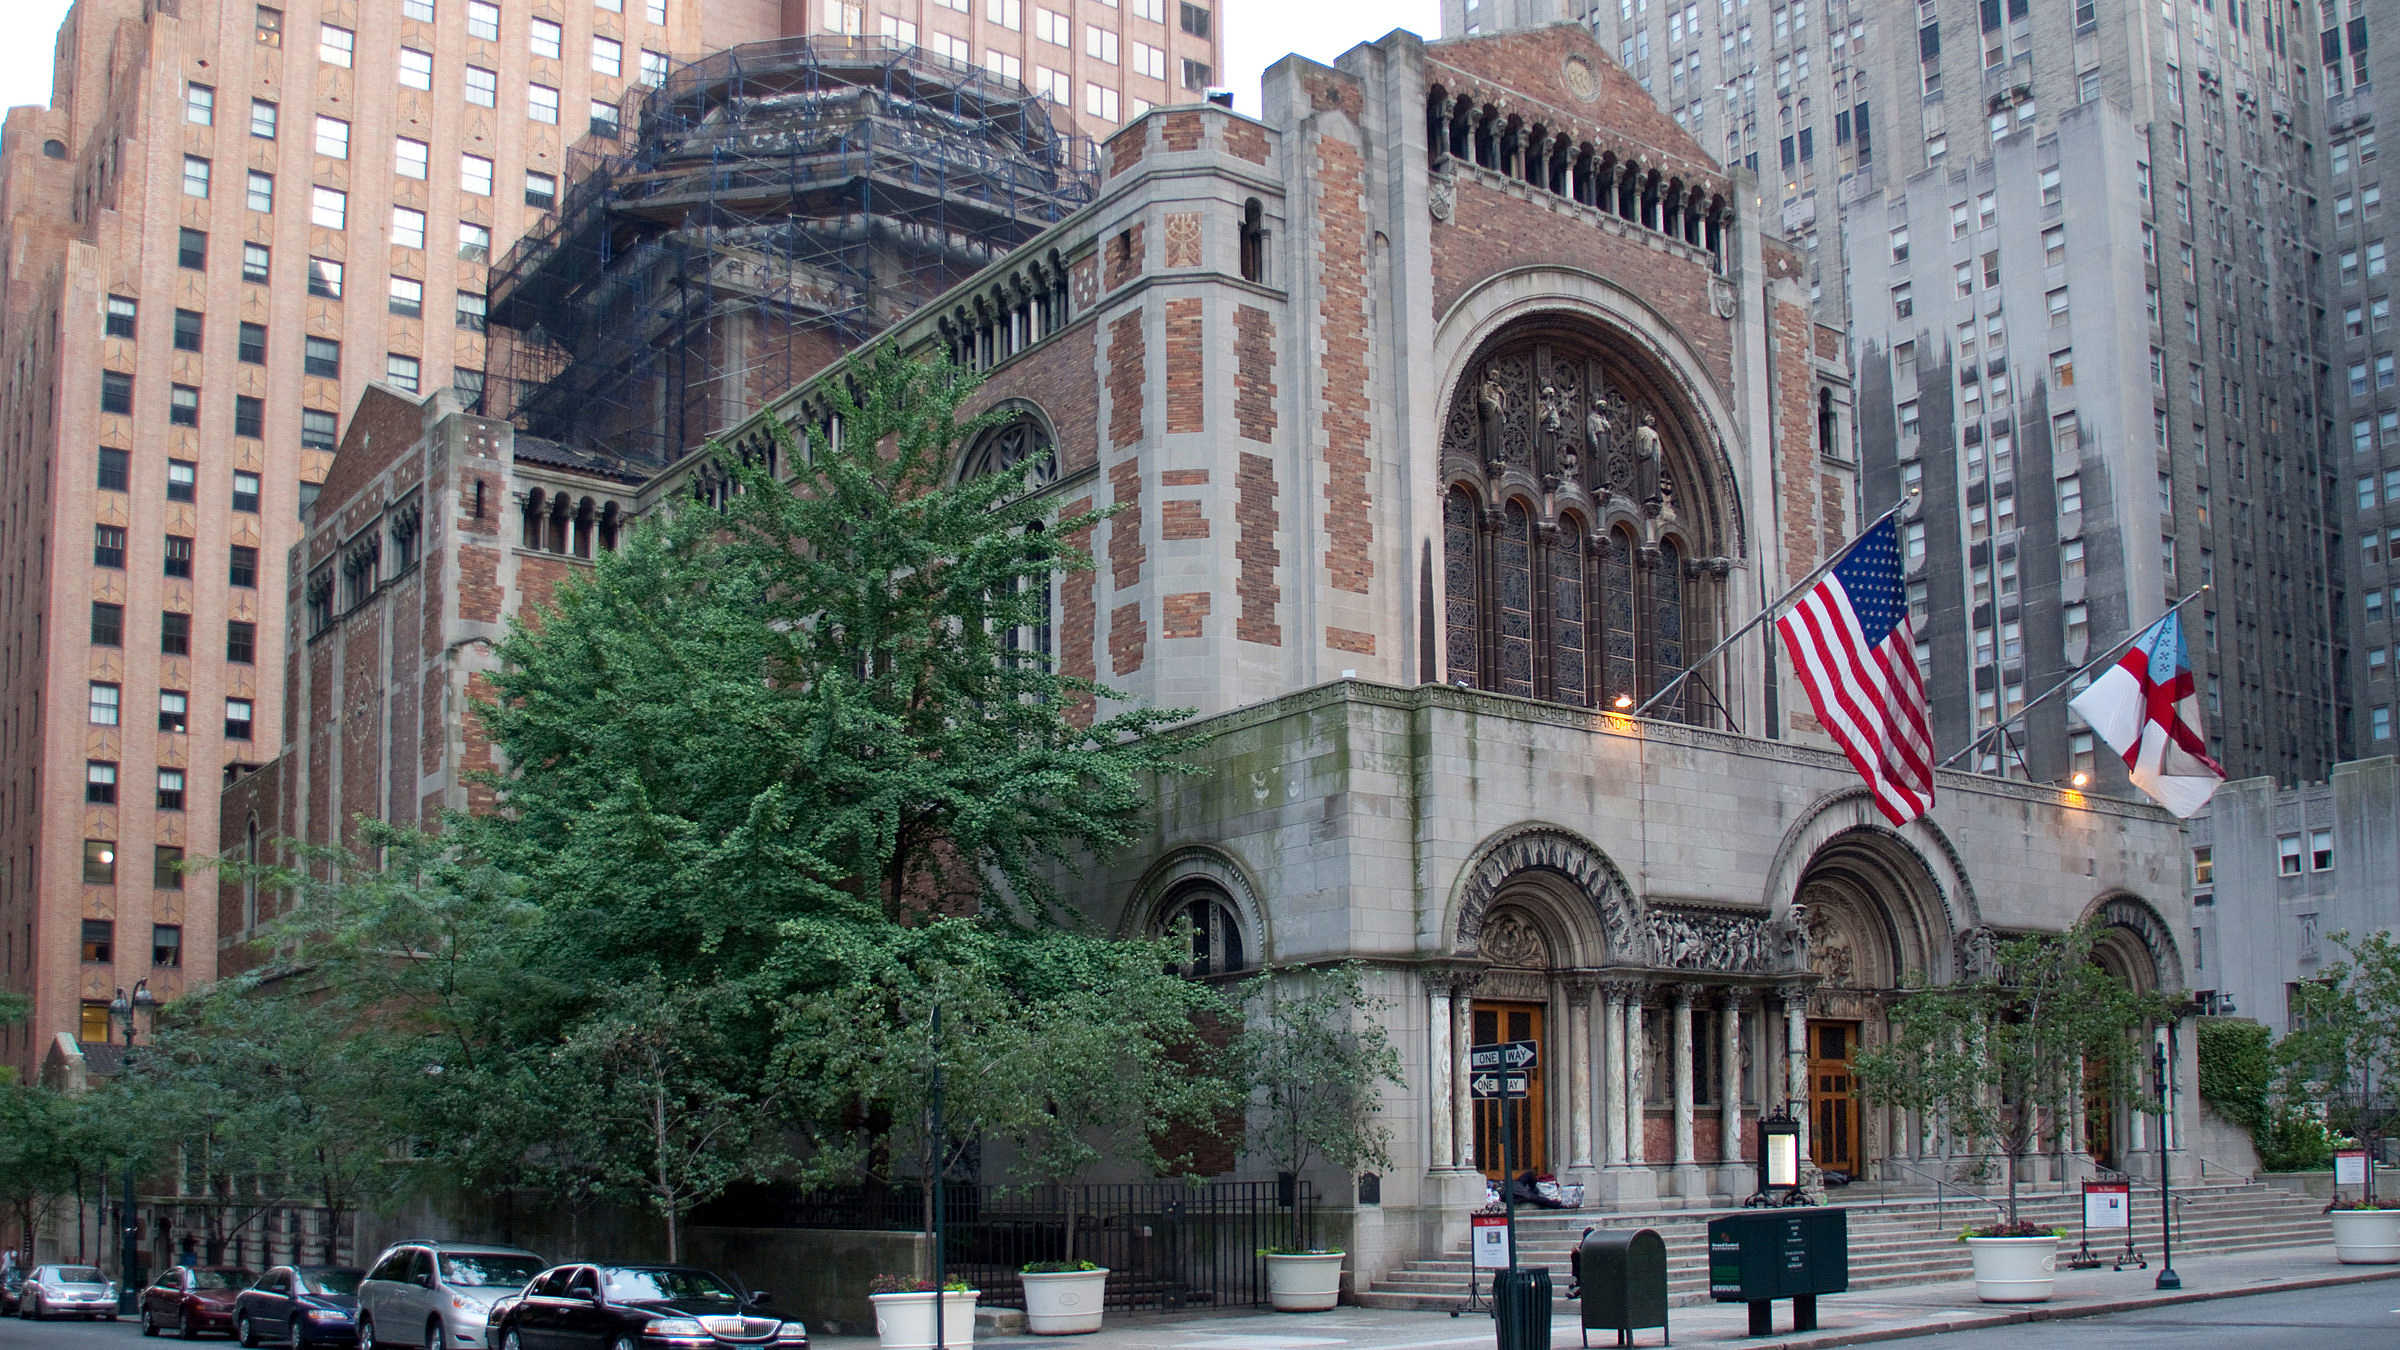 10 New NHLs St. Bartholomew's Church and Community House in New York